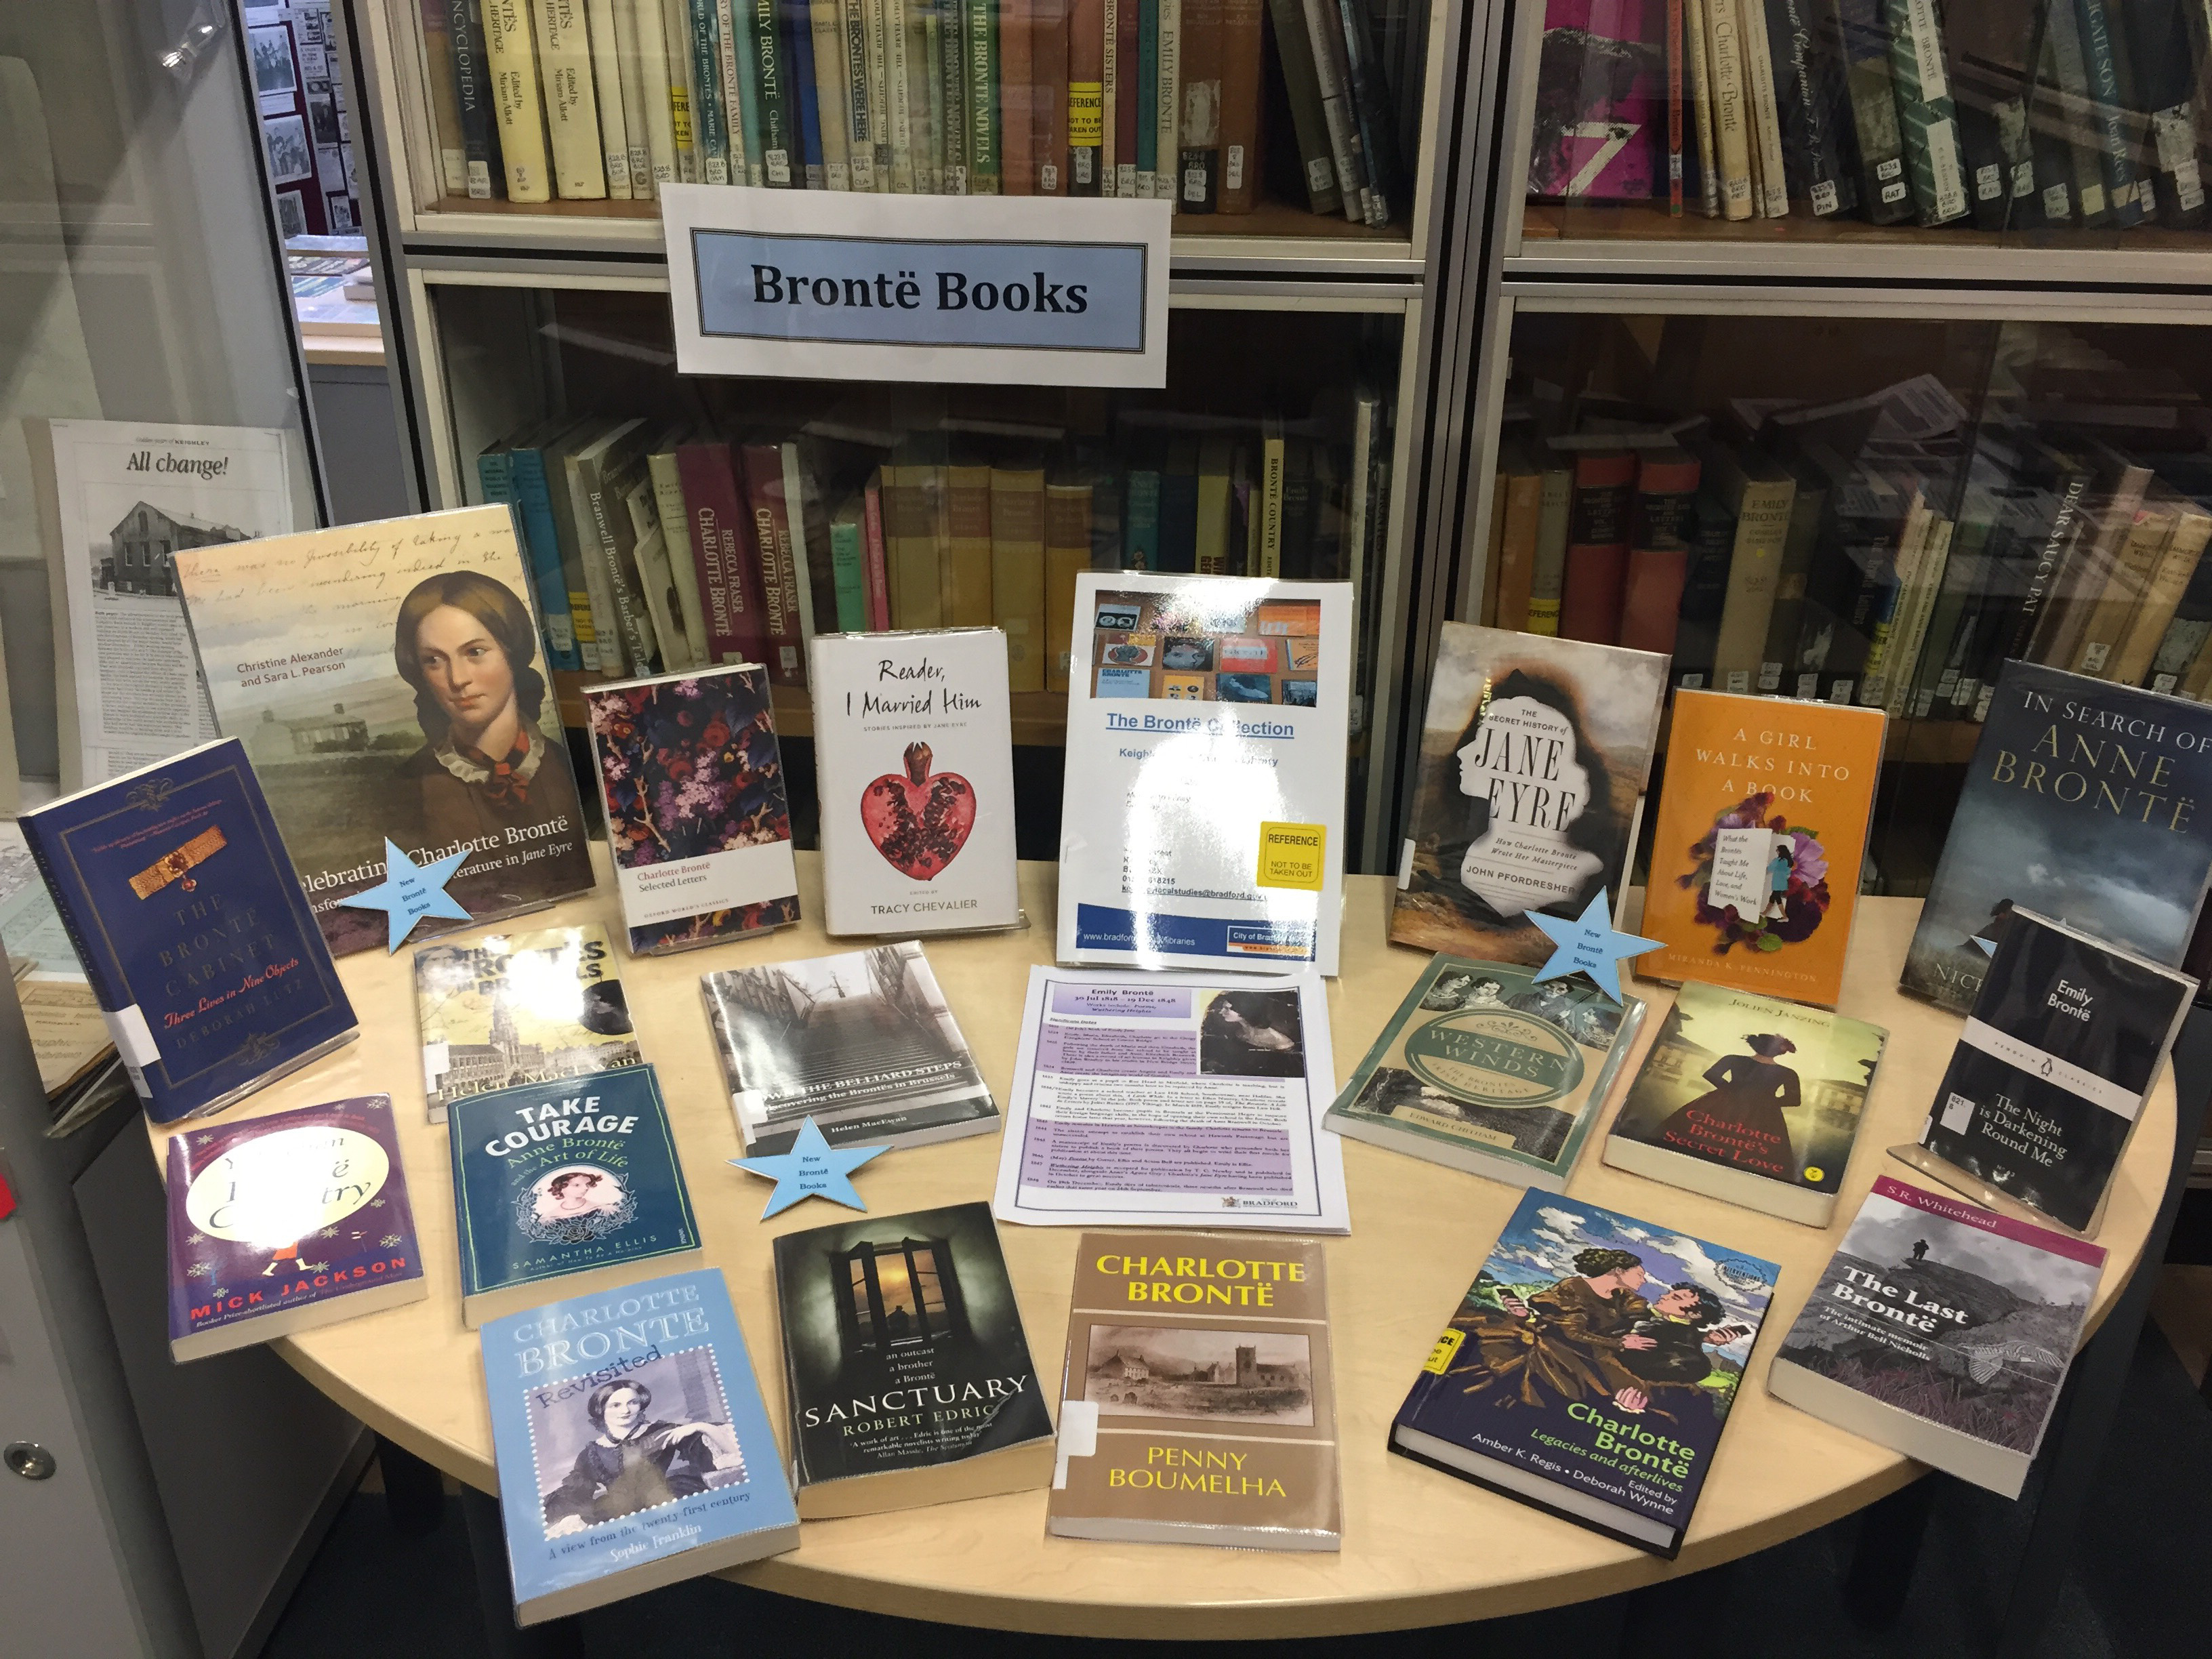 Selection of Bronte books inKeighley Local Studies Library